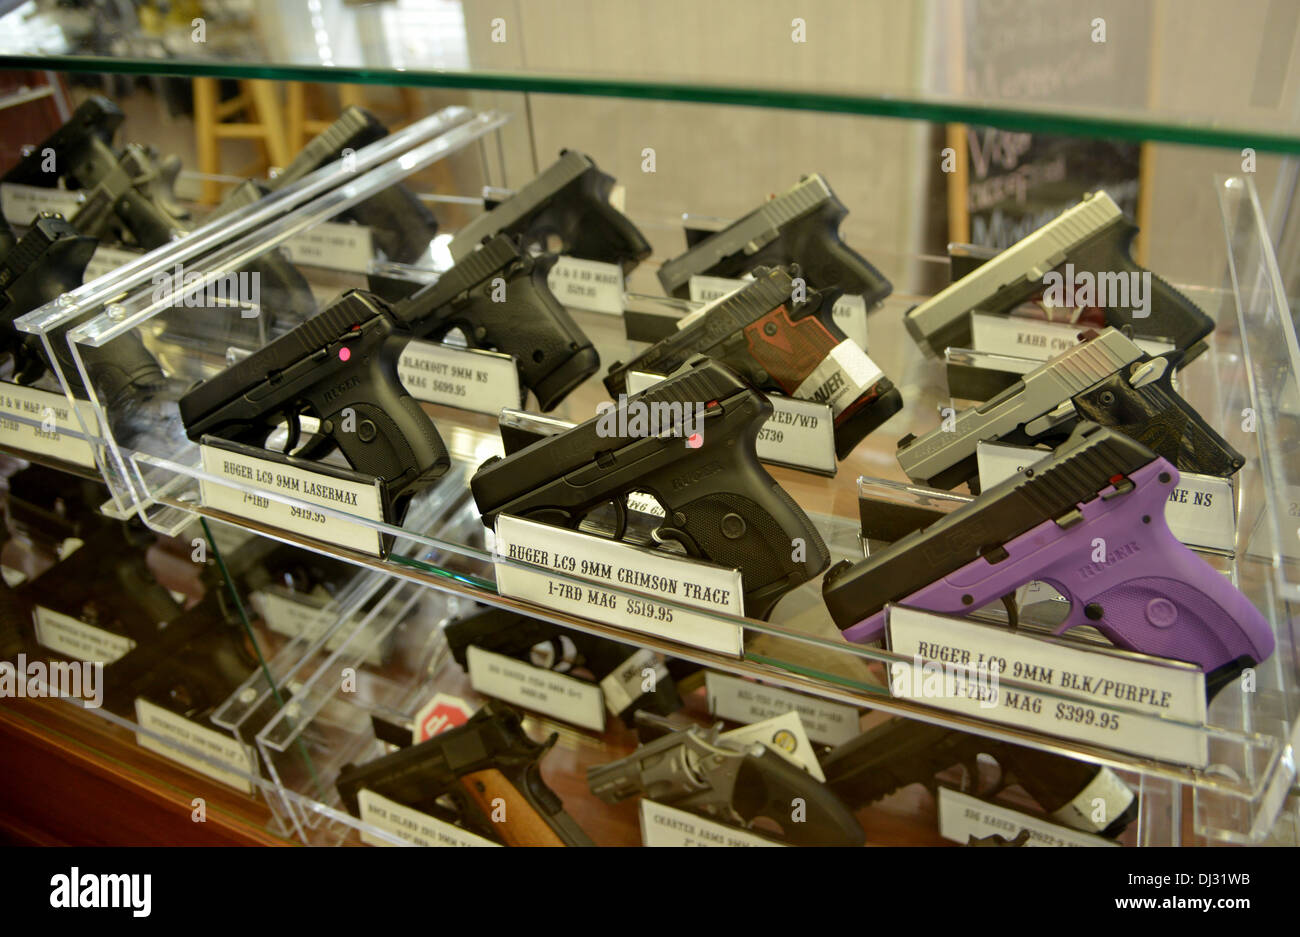 Hand guns on display in a store in small town middle America - Stock Image